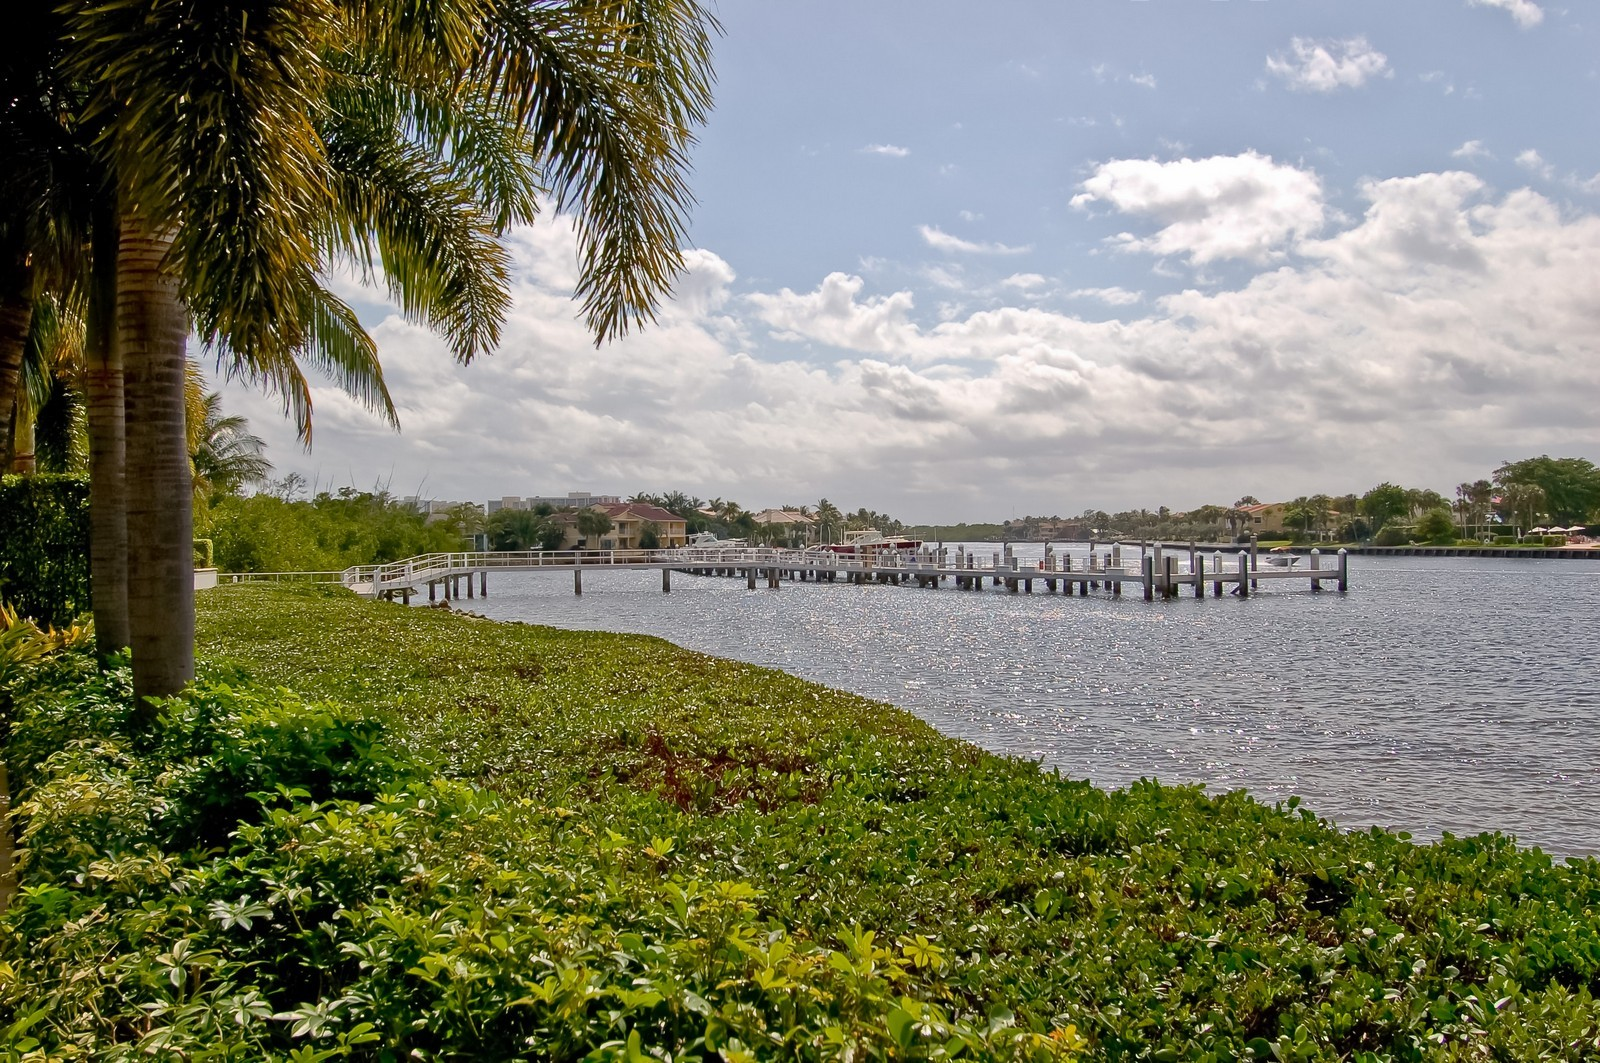 Real Estate Photography - 4022 S Ocean Blvd, Highland Beach, FL, 33487 - Intracoastal View